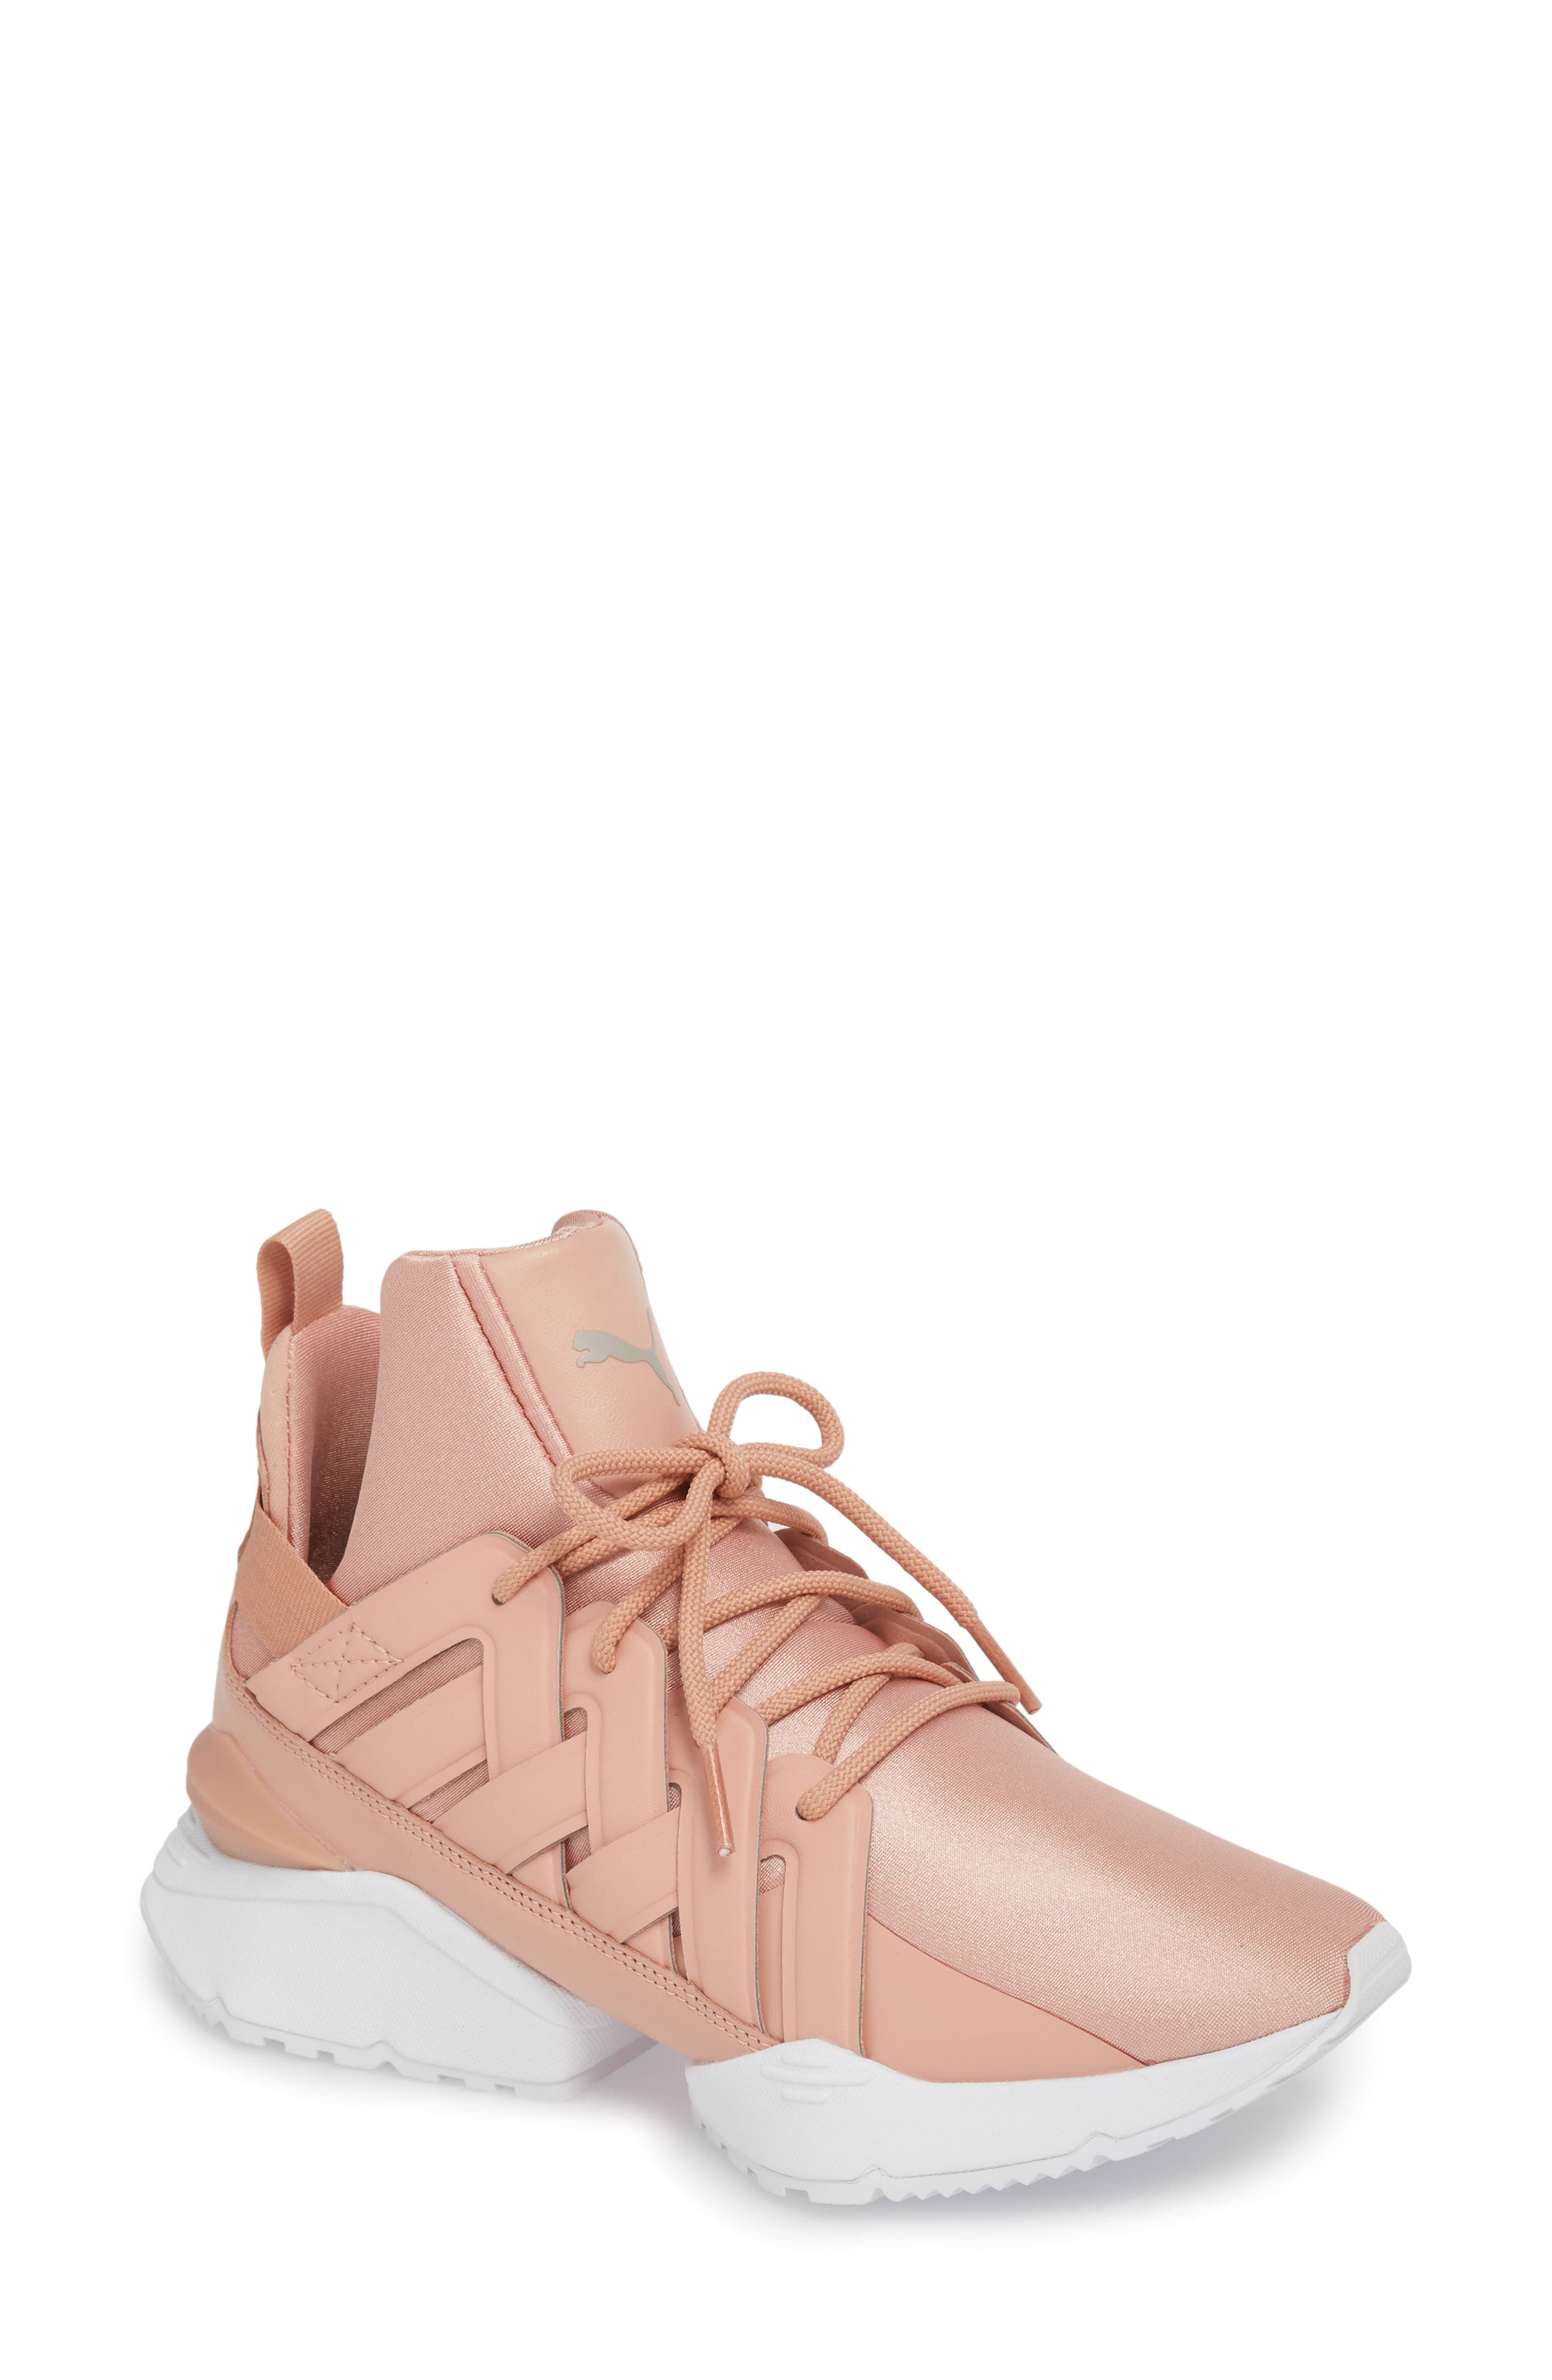 Main Image - PUMA Muse Echo Satin En Pointe High Top Sneaker (Women)